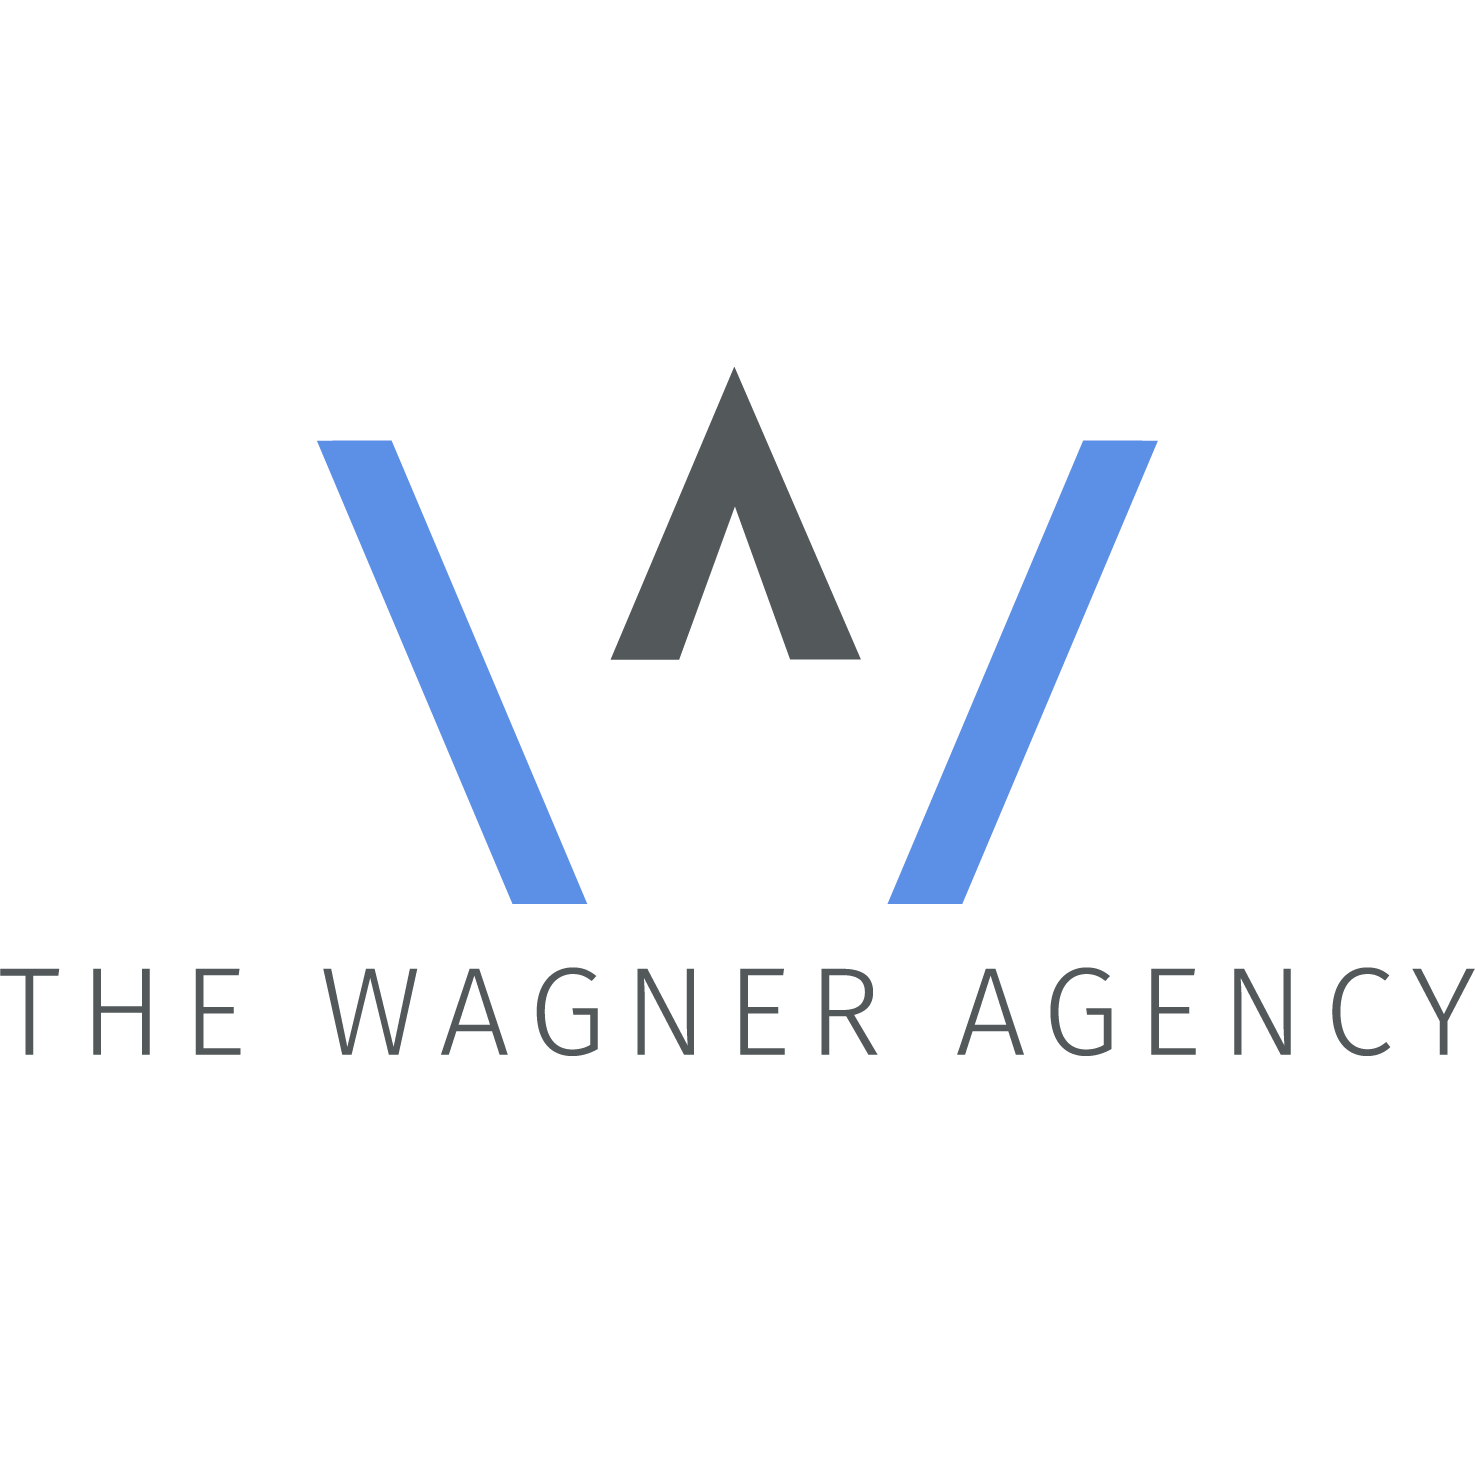 The Wagner Agency Logo